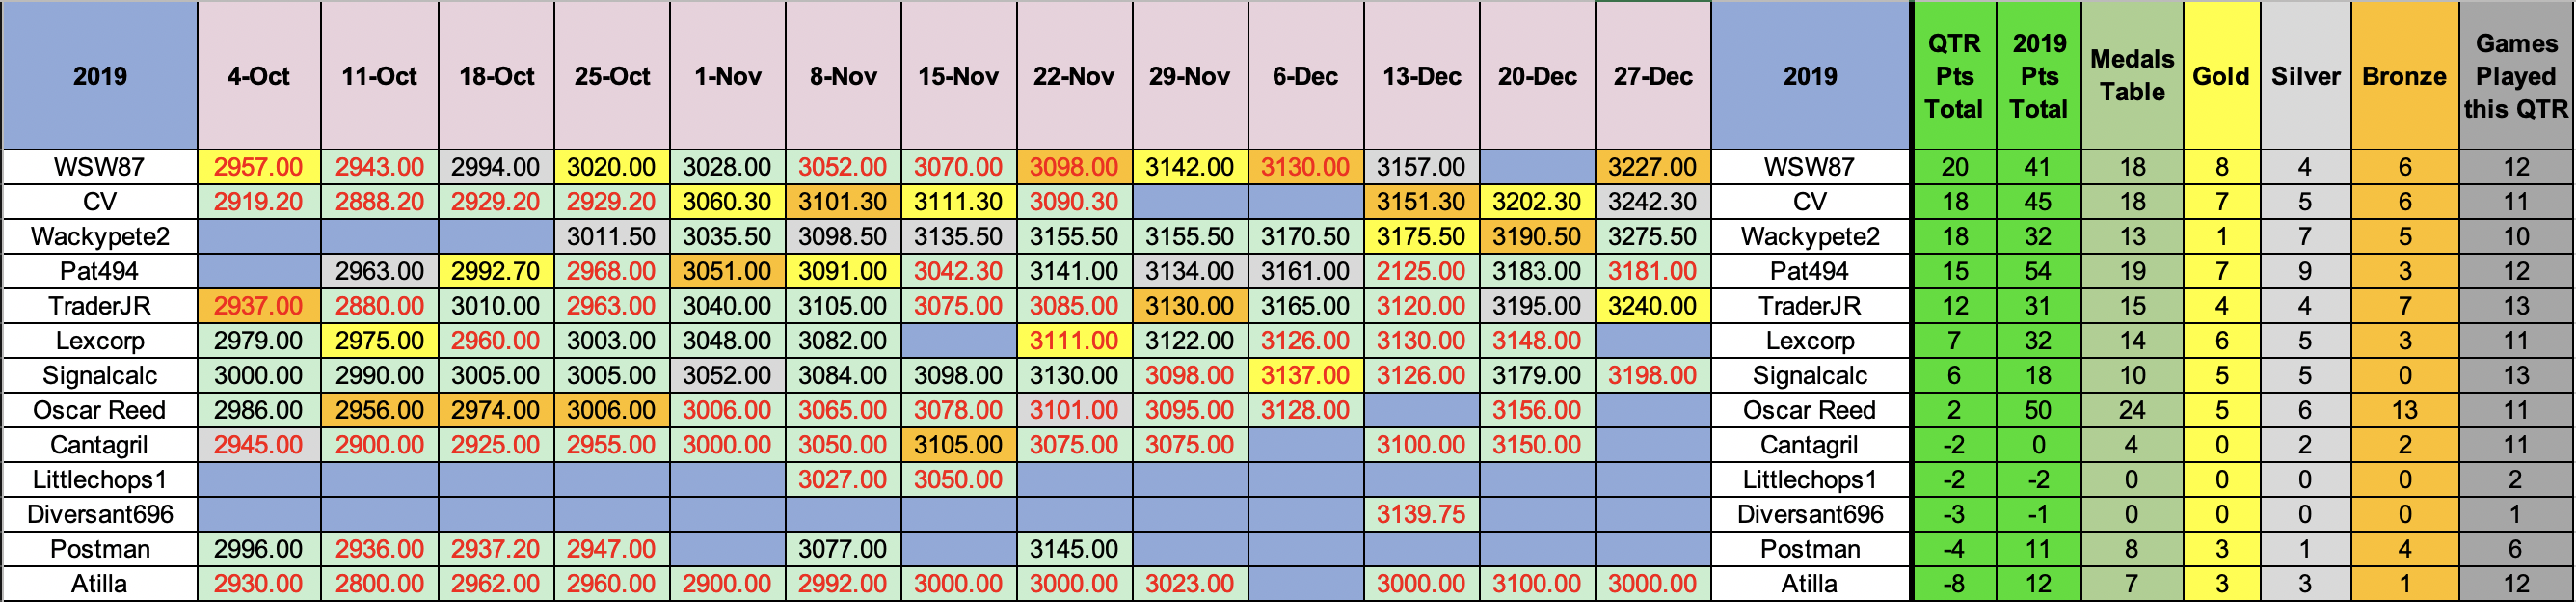 SP500 quarterly results Dec 19.png